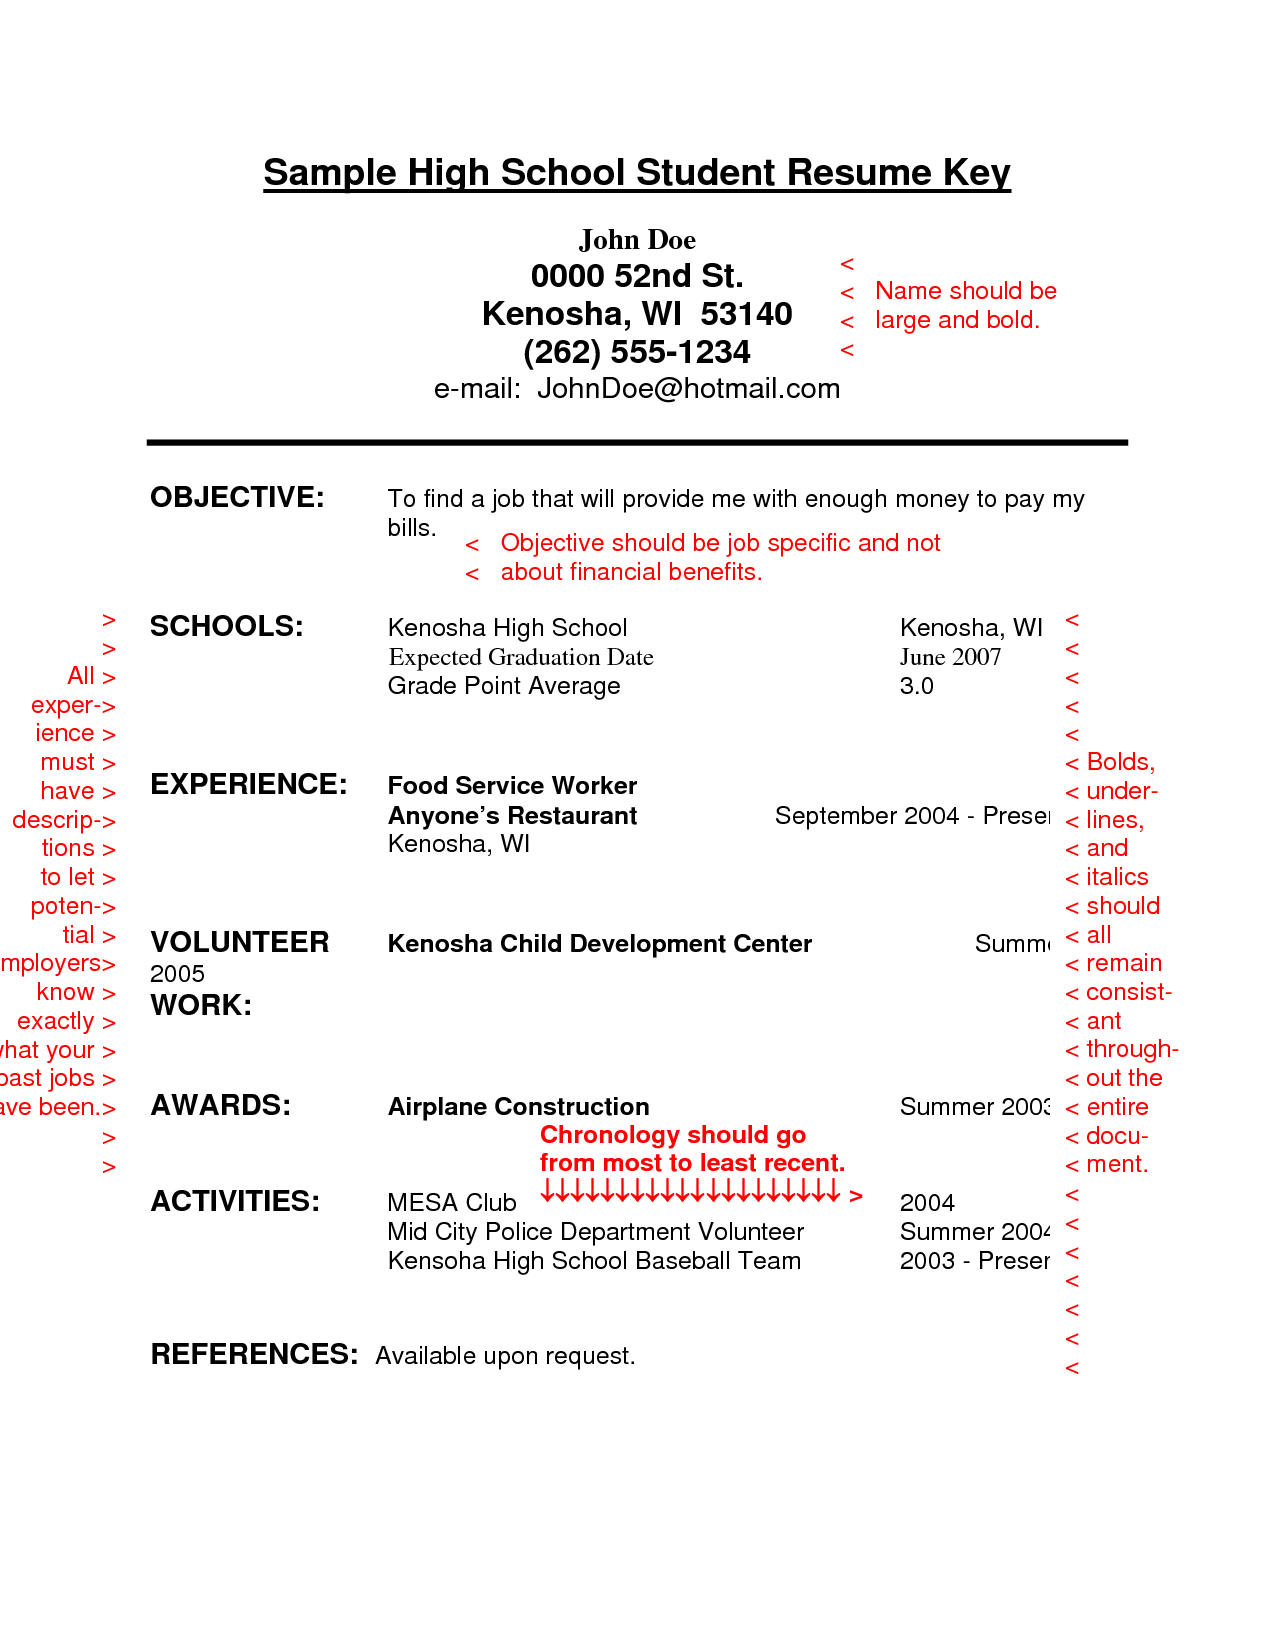 Resume Format For High School Students 2 Resume Format Sample